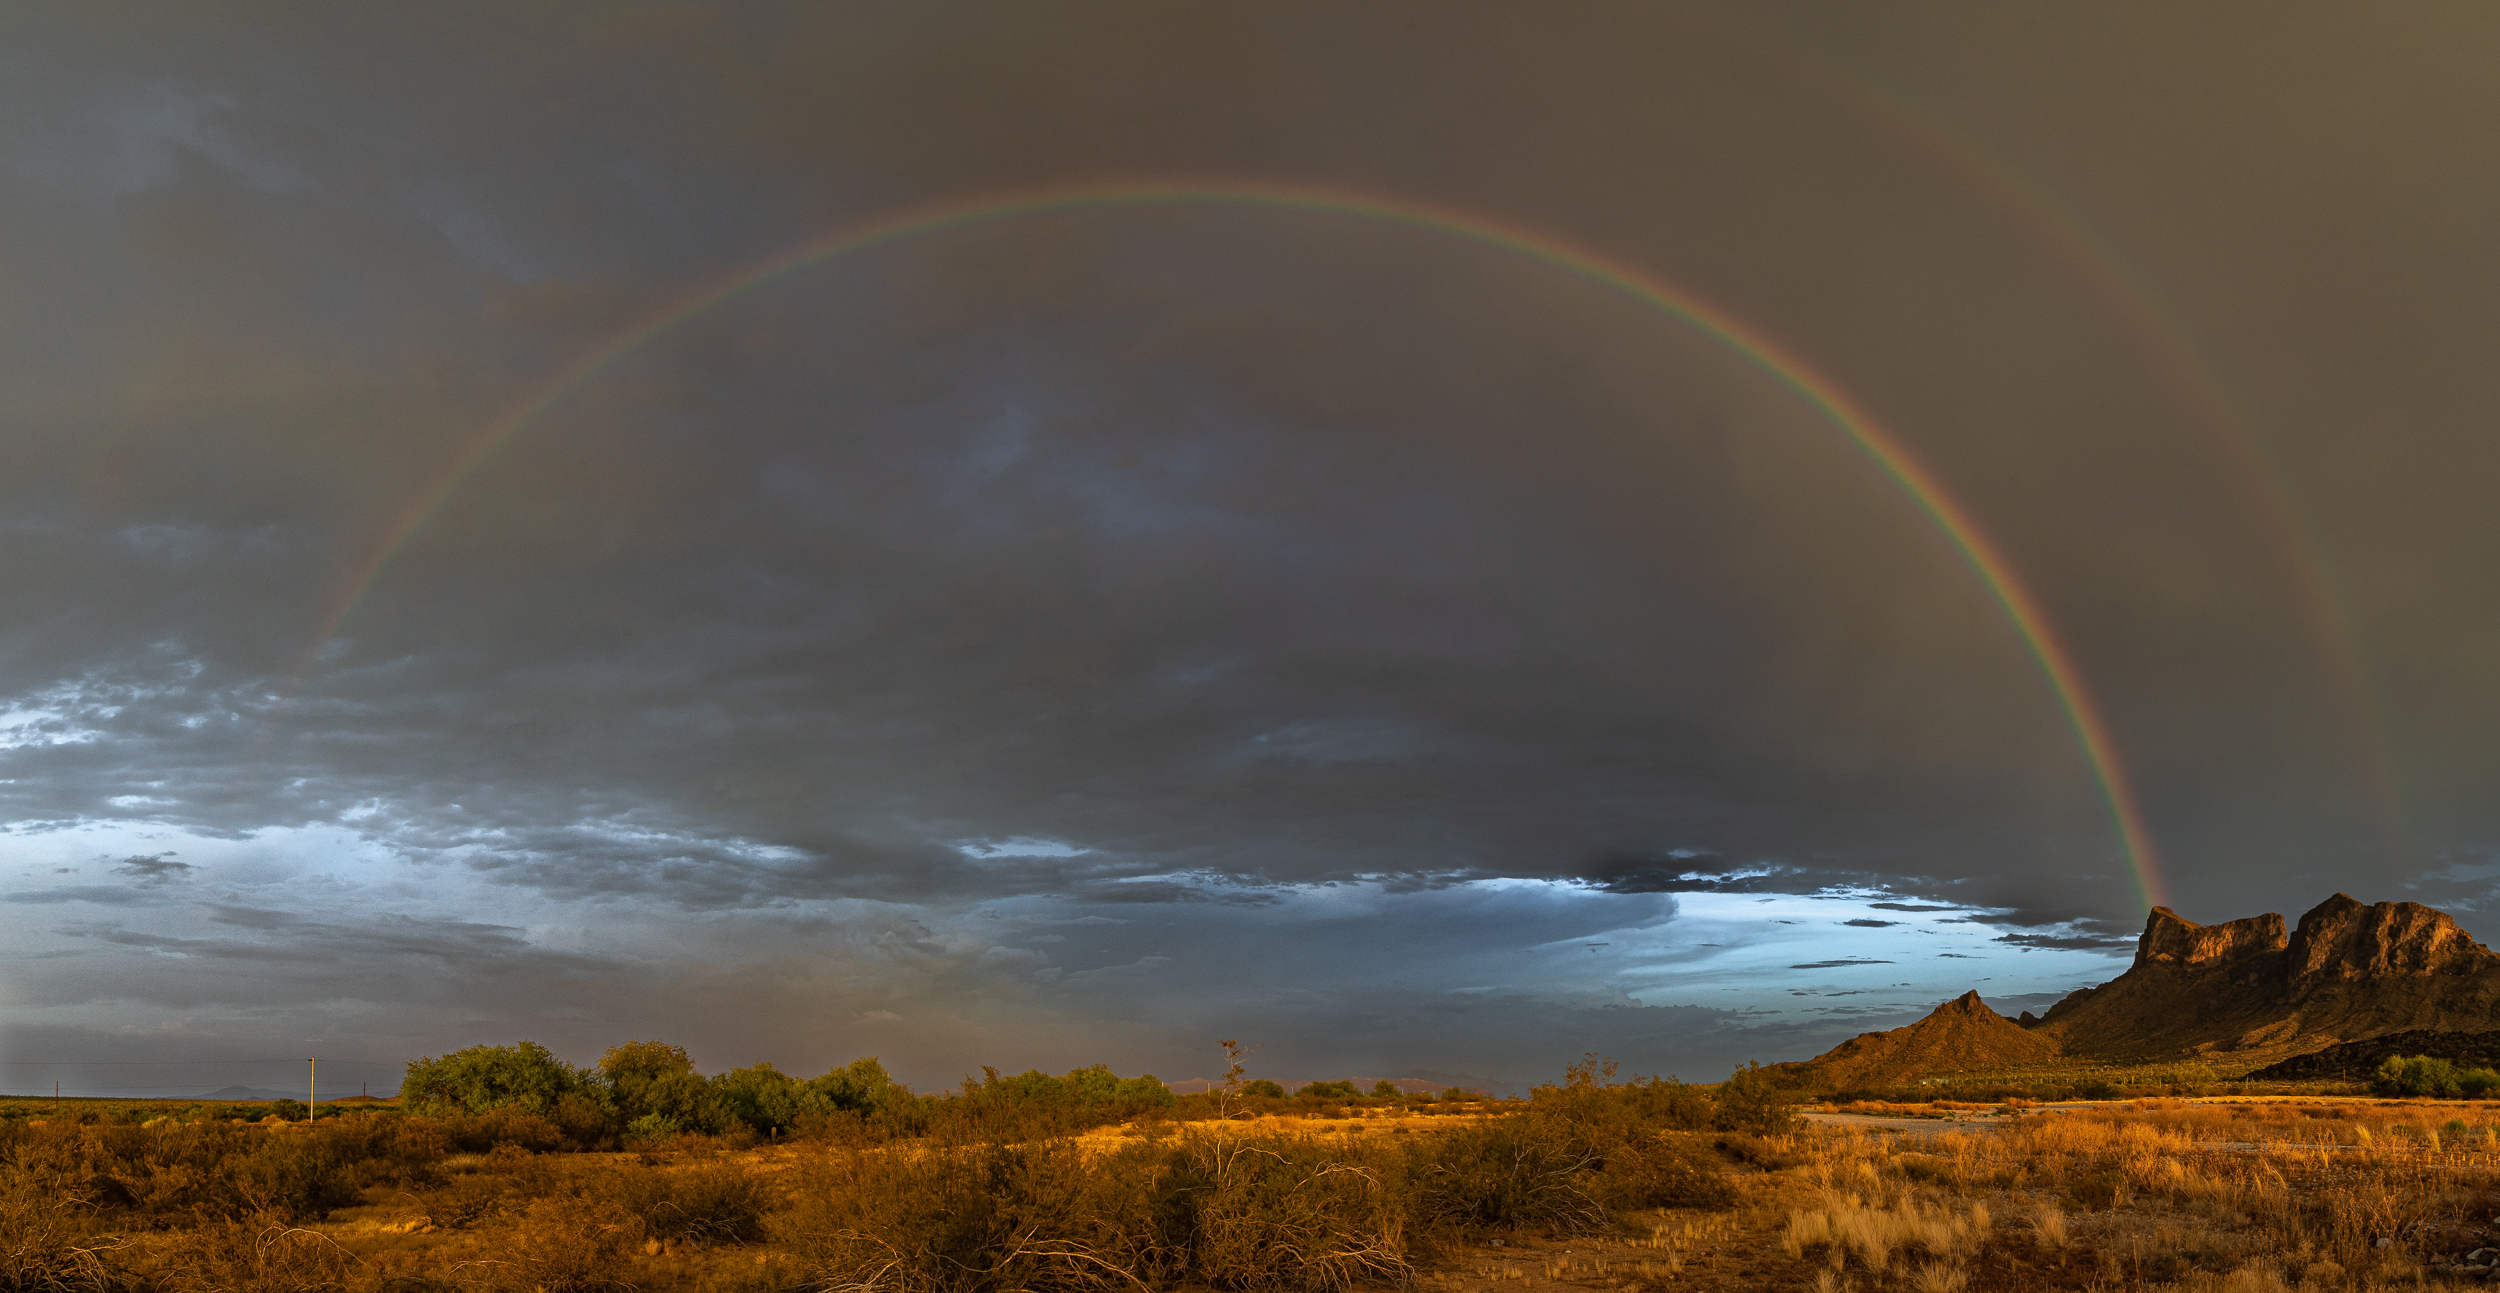 ArizonaStorm_20190724_0024-Pano-Edit.jpg